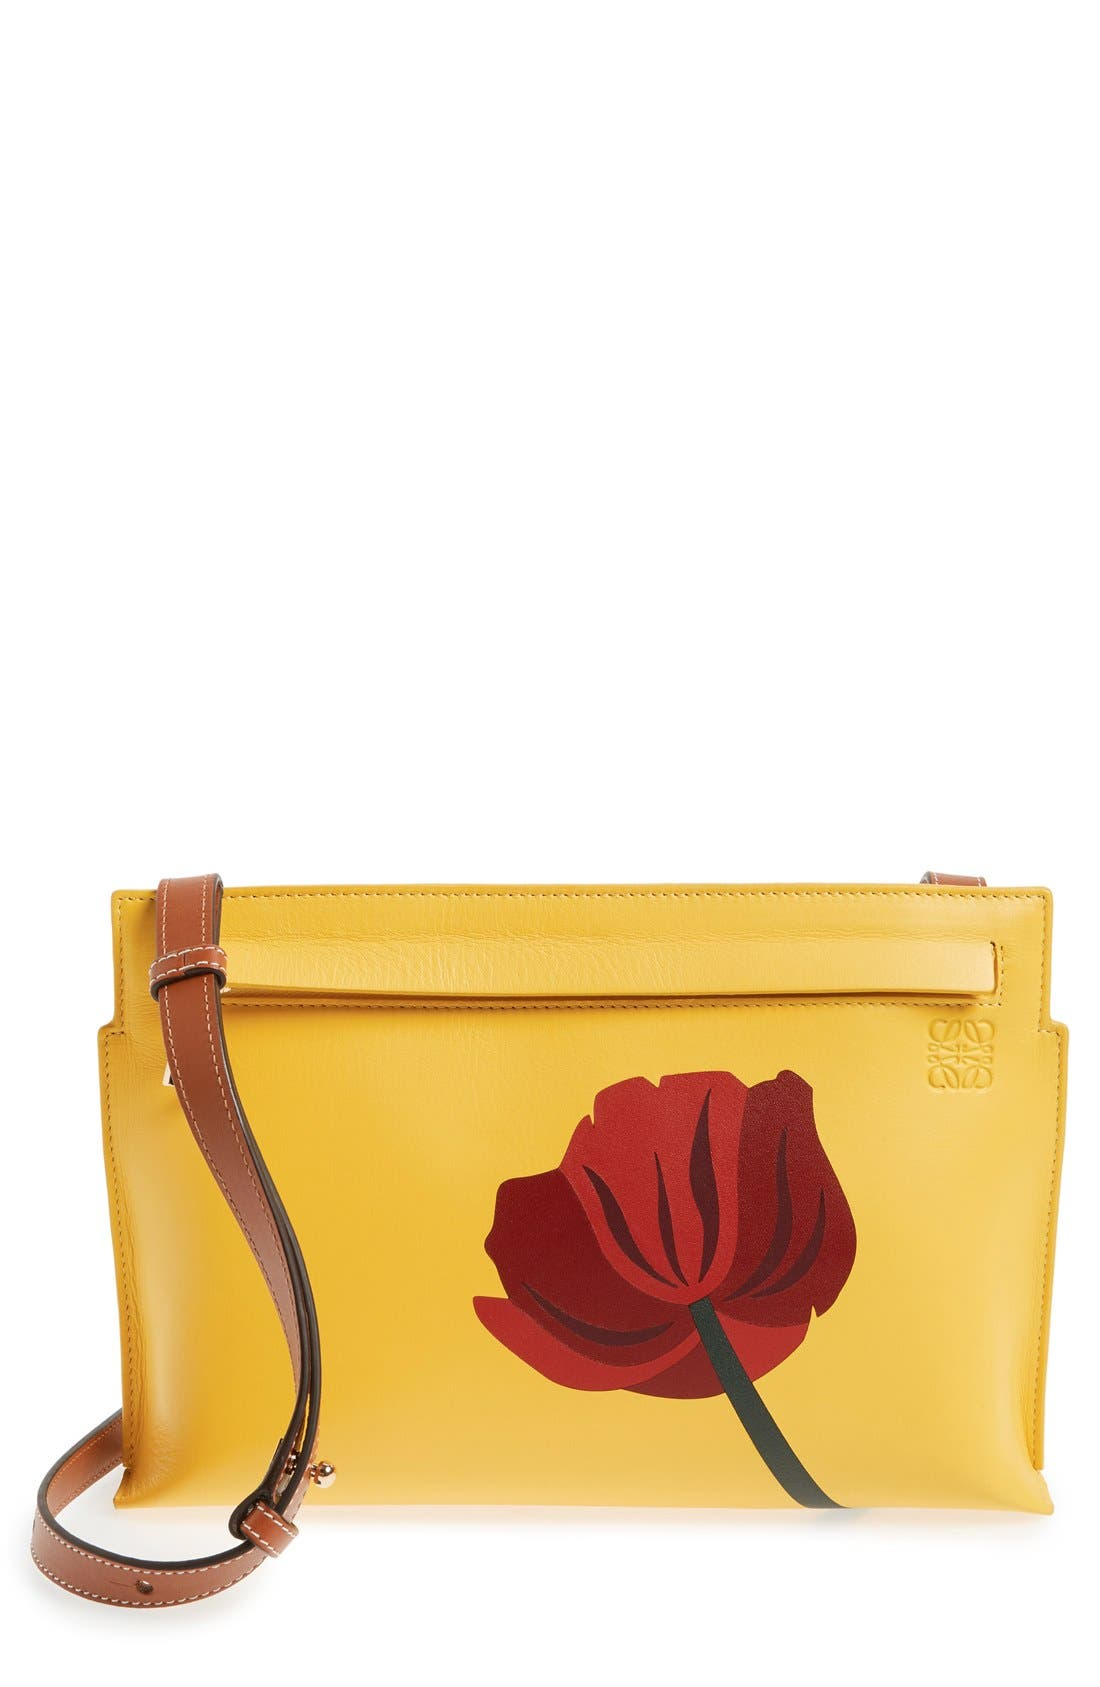 Main Image - Loewe 'Fiore' Marquetry Calfskin Leather Crossbody Clutch